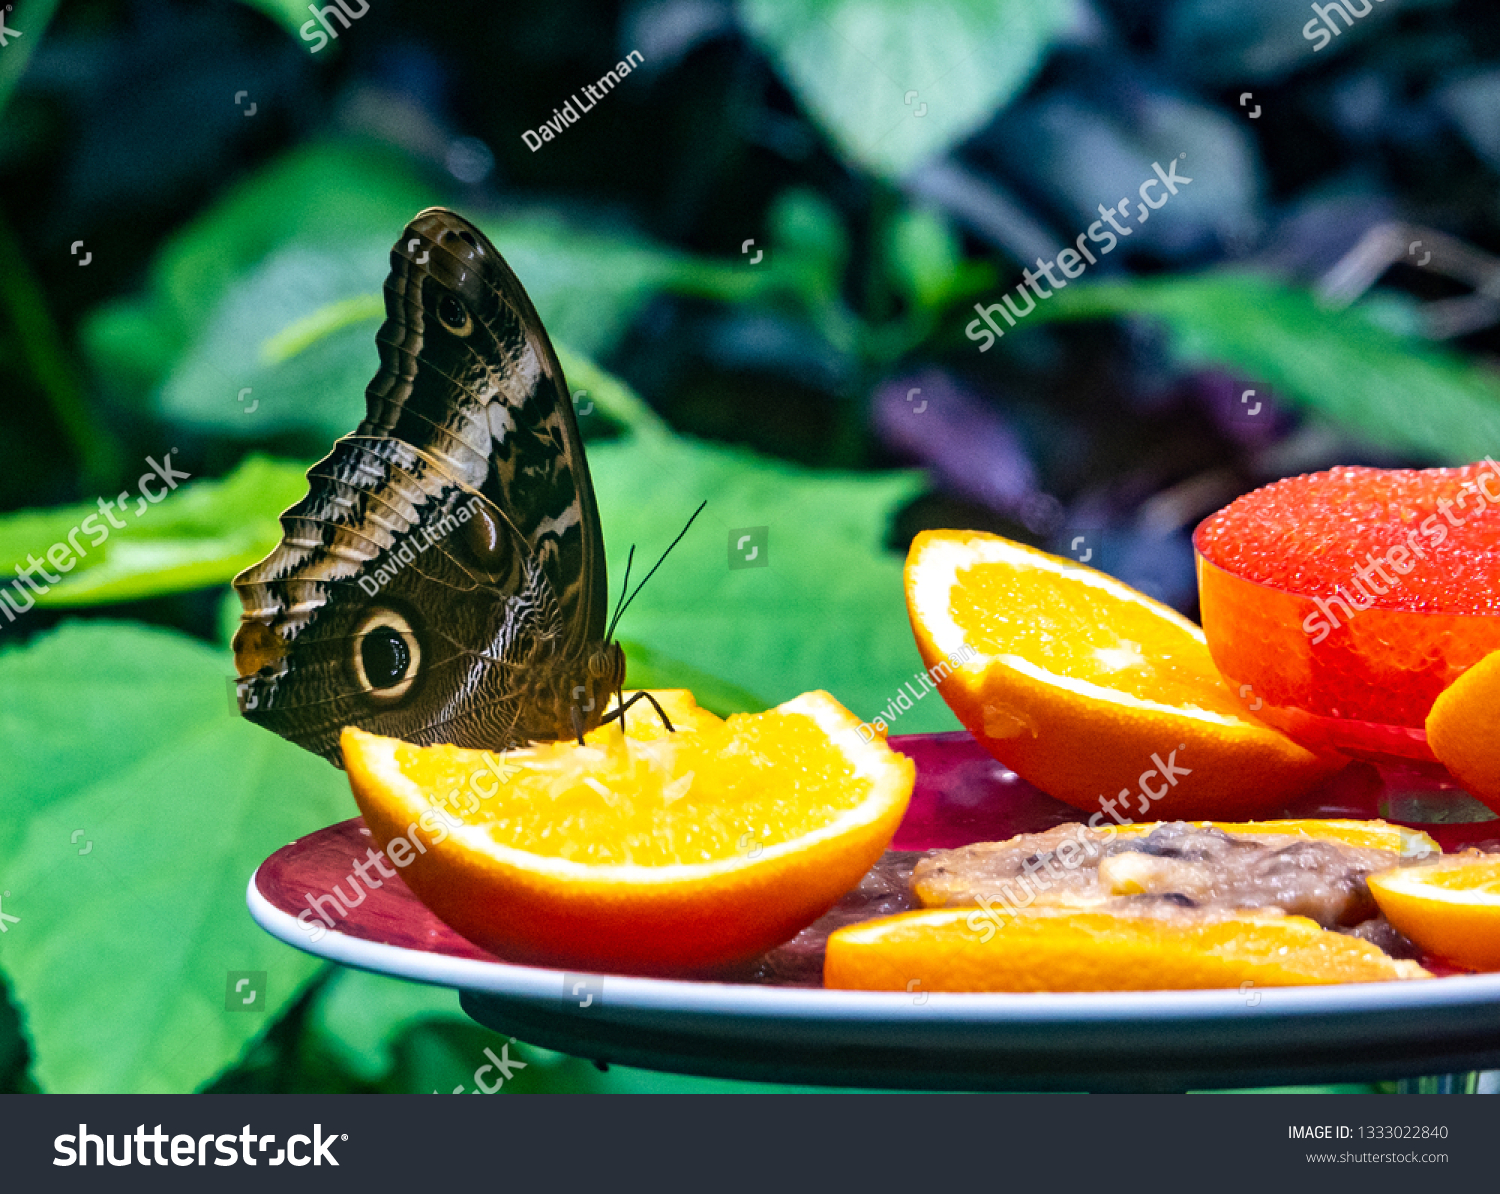 An Owl Butterfly (Caligo eurilochus brasiliensis)  feeds on a plate of cut fruit, at the California Academy of Sciences, in Golden Gate Park of San Francisco.